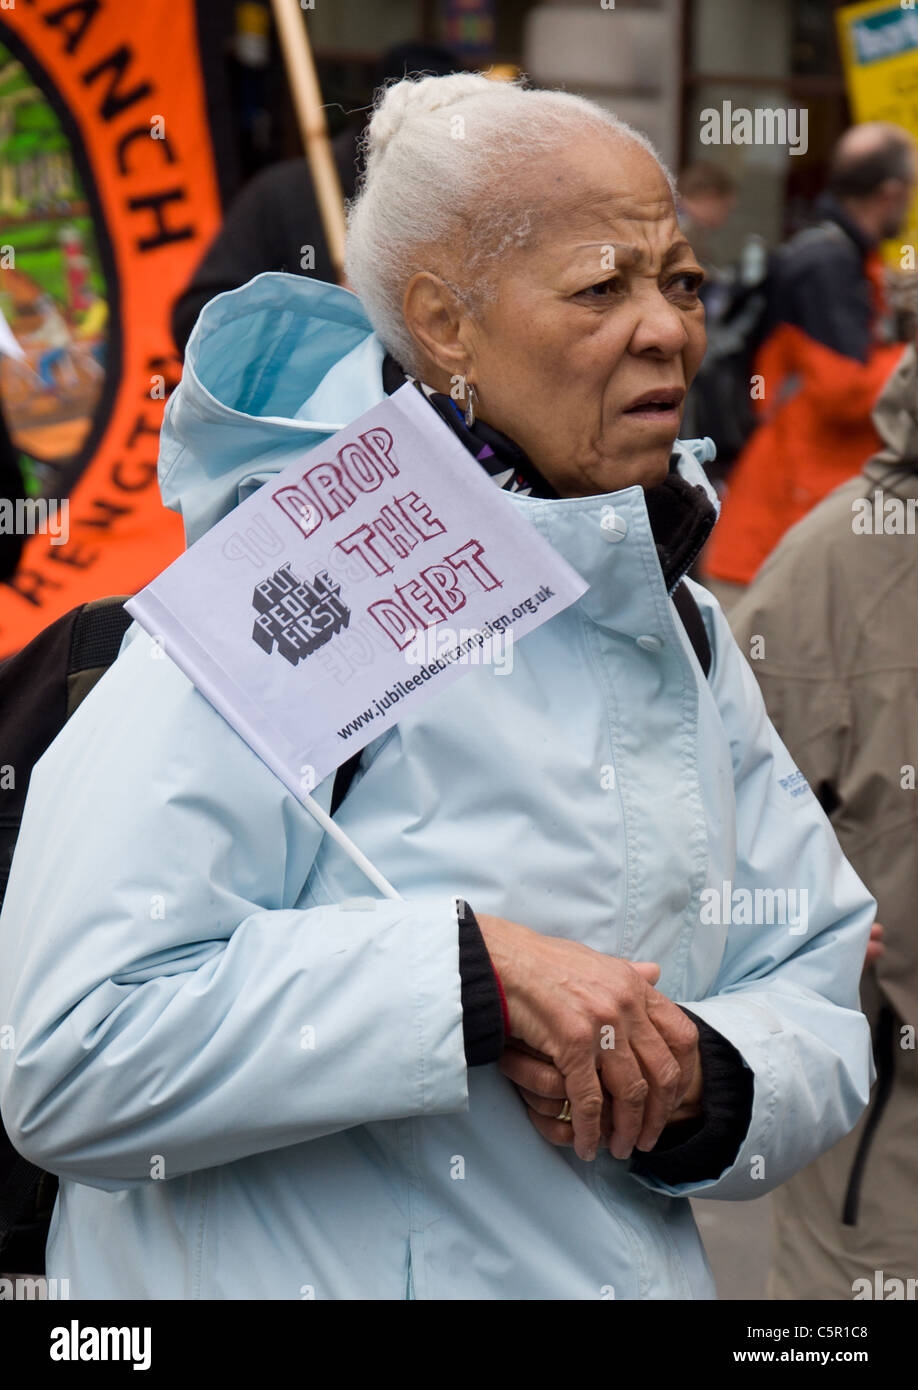 Old worman with a 'Drop the debt' flag at G20 March in Picadilly, London on 28th March 2009 - Stock Image